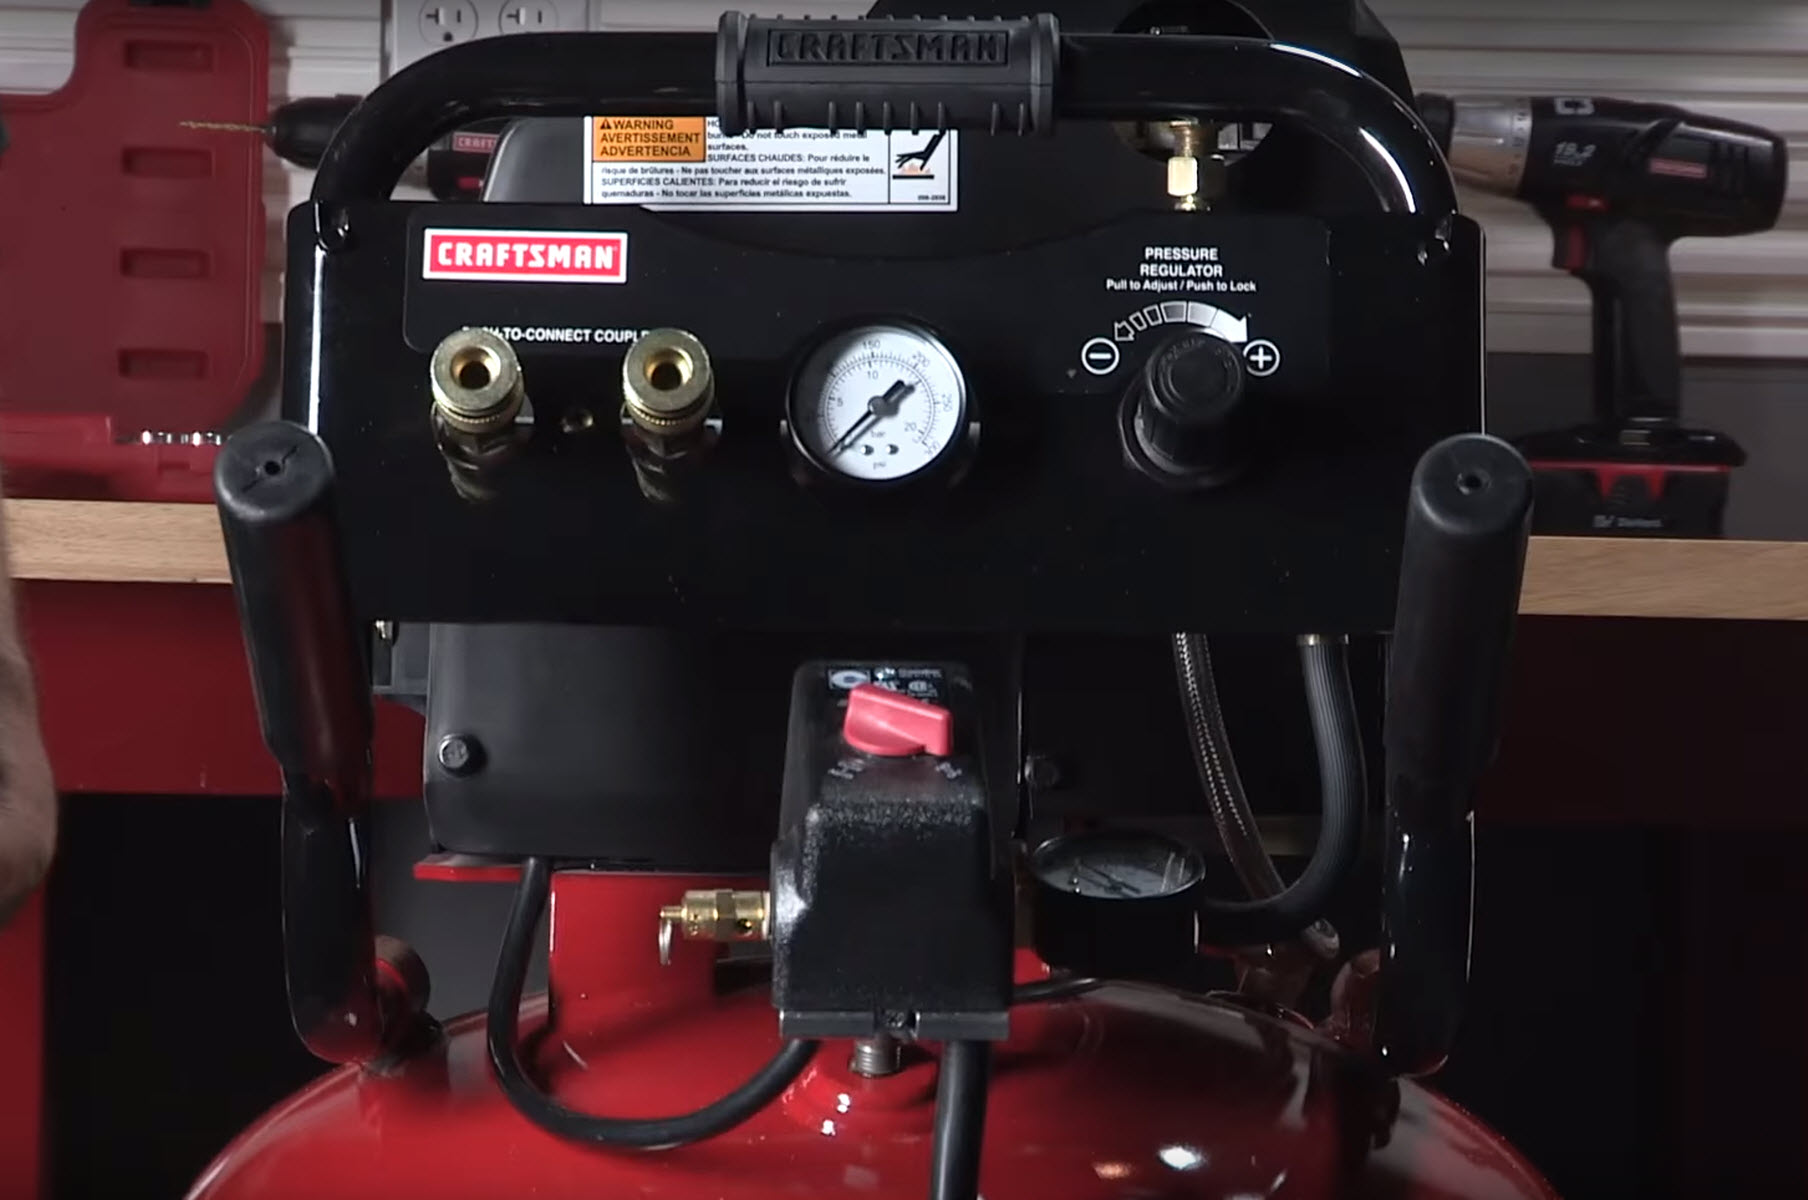 Common air compressor problems - safety valve keeps popping open